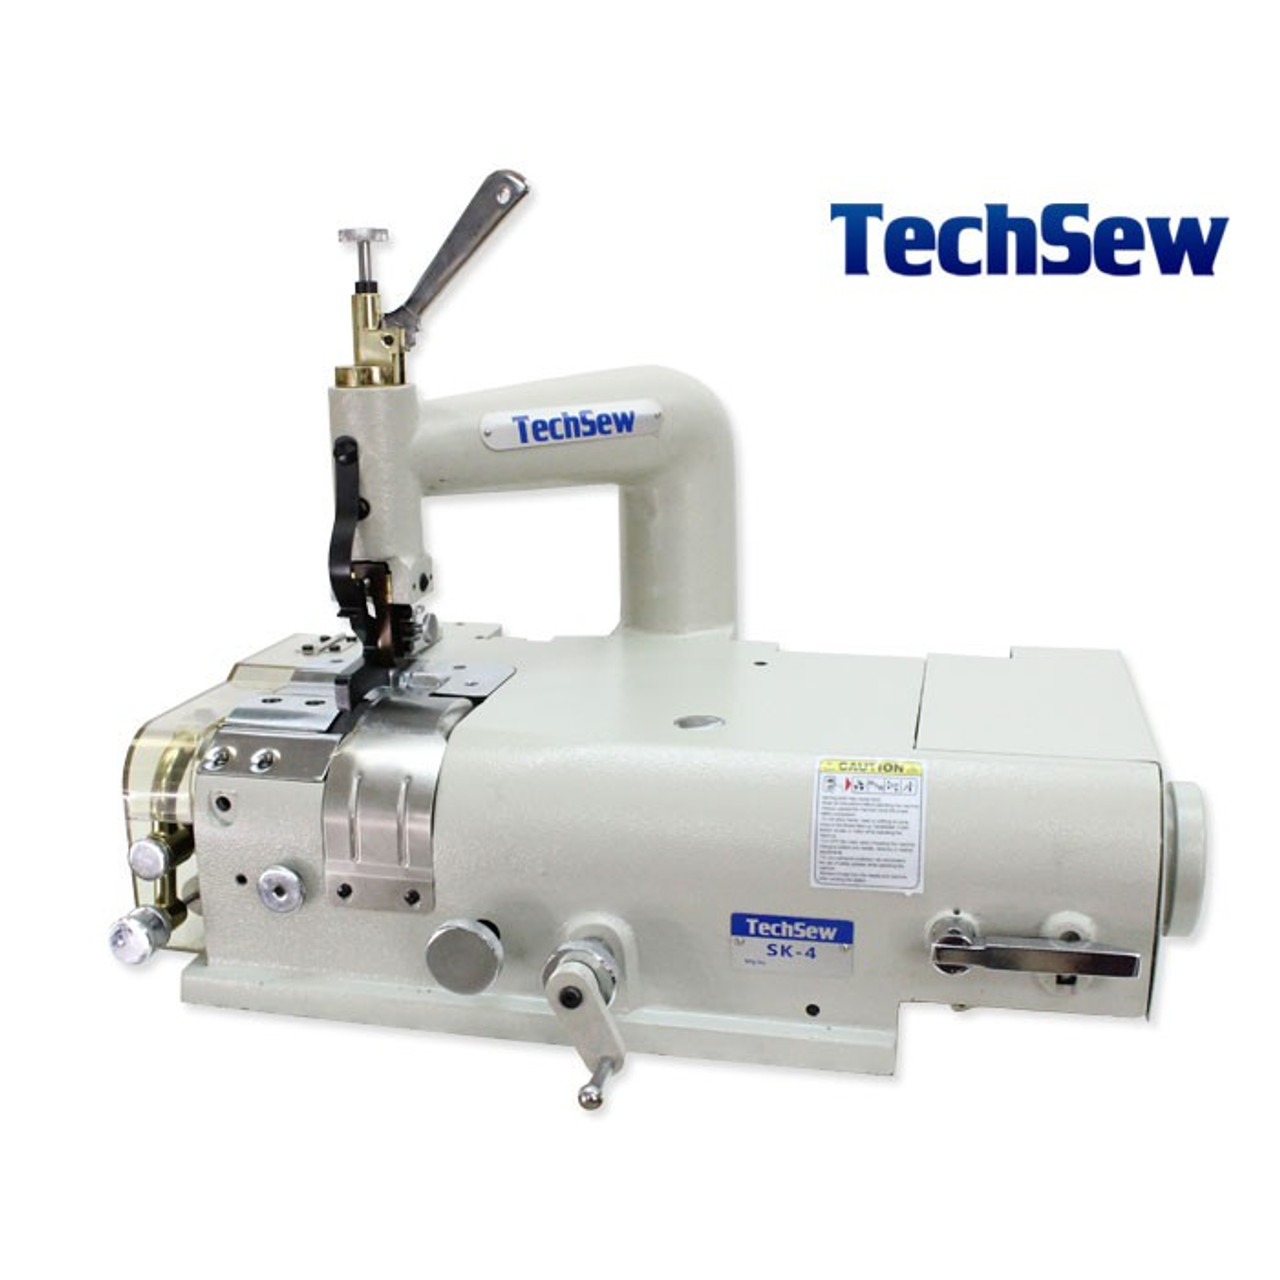 Techsew Sk-4 Leather Skiving Machine